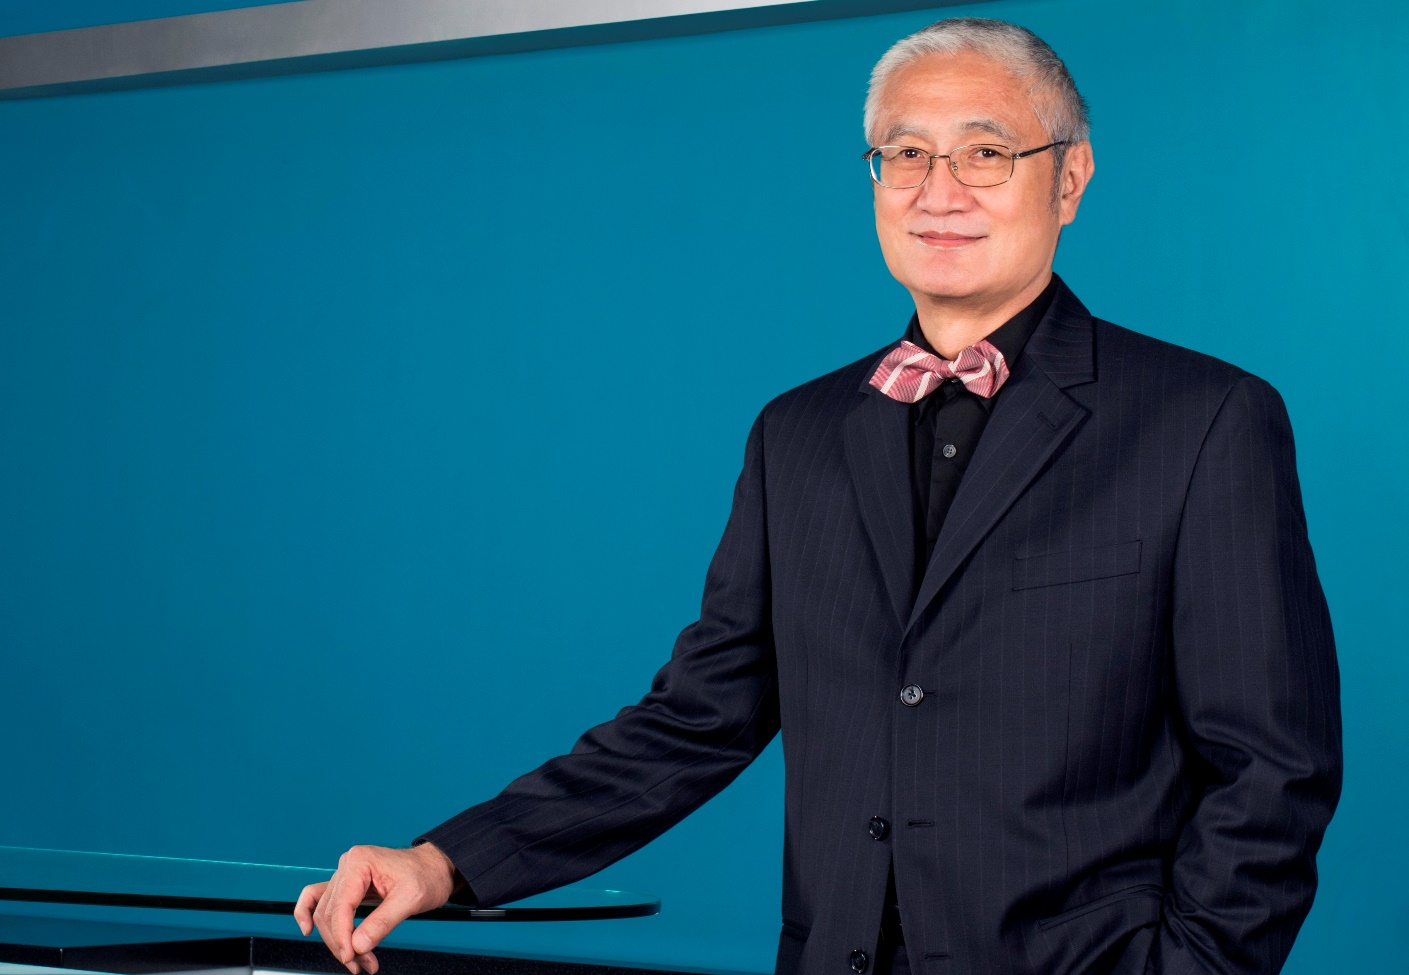 D-Link's new chairman Douglas Hsiao